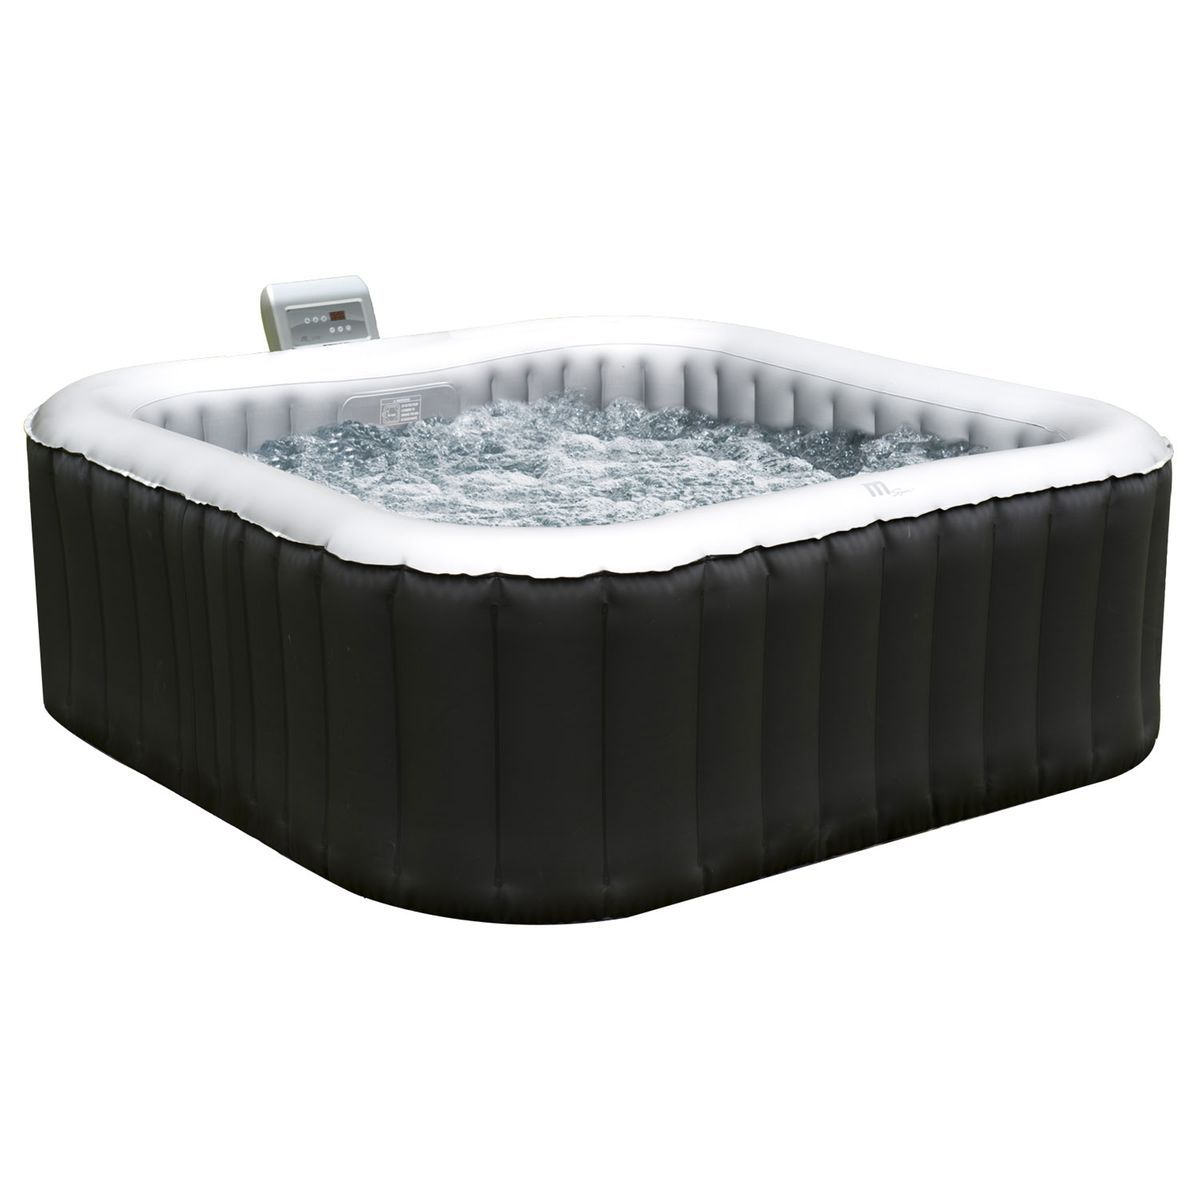 Spa Intex 6 Personnes Leroy Merlin spa gonflable carré 158cm alpine 4 places - taille : taille